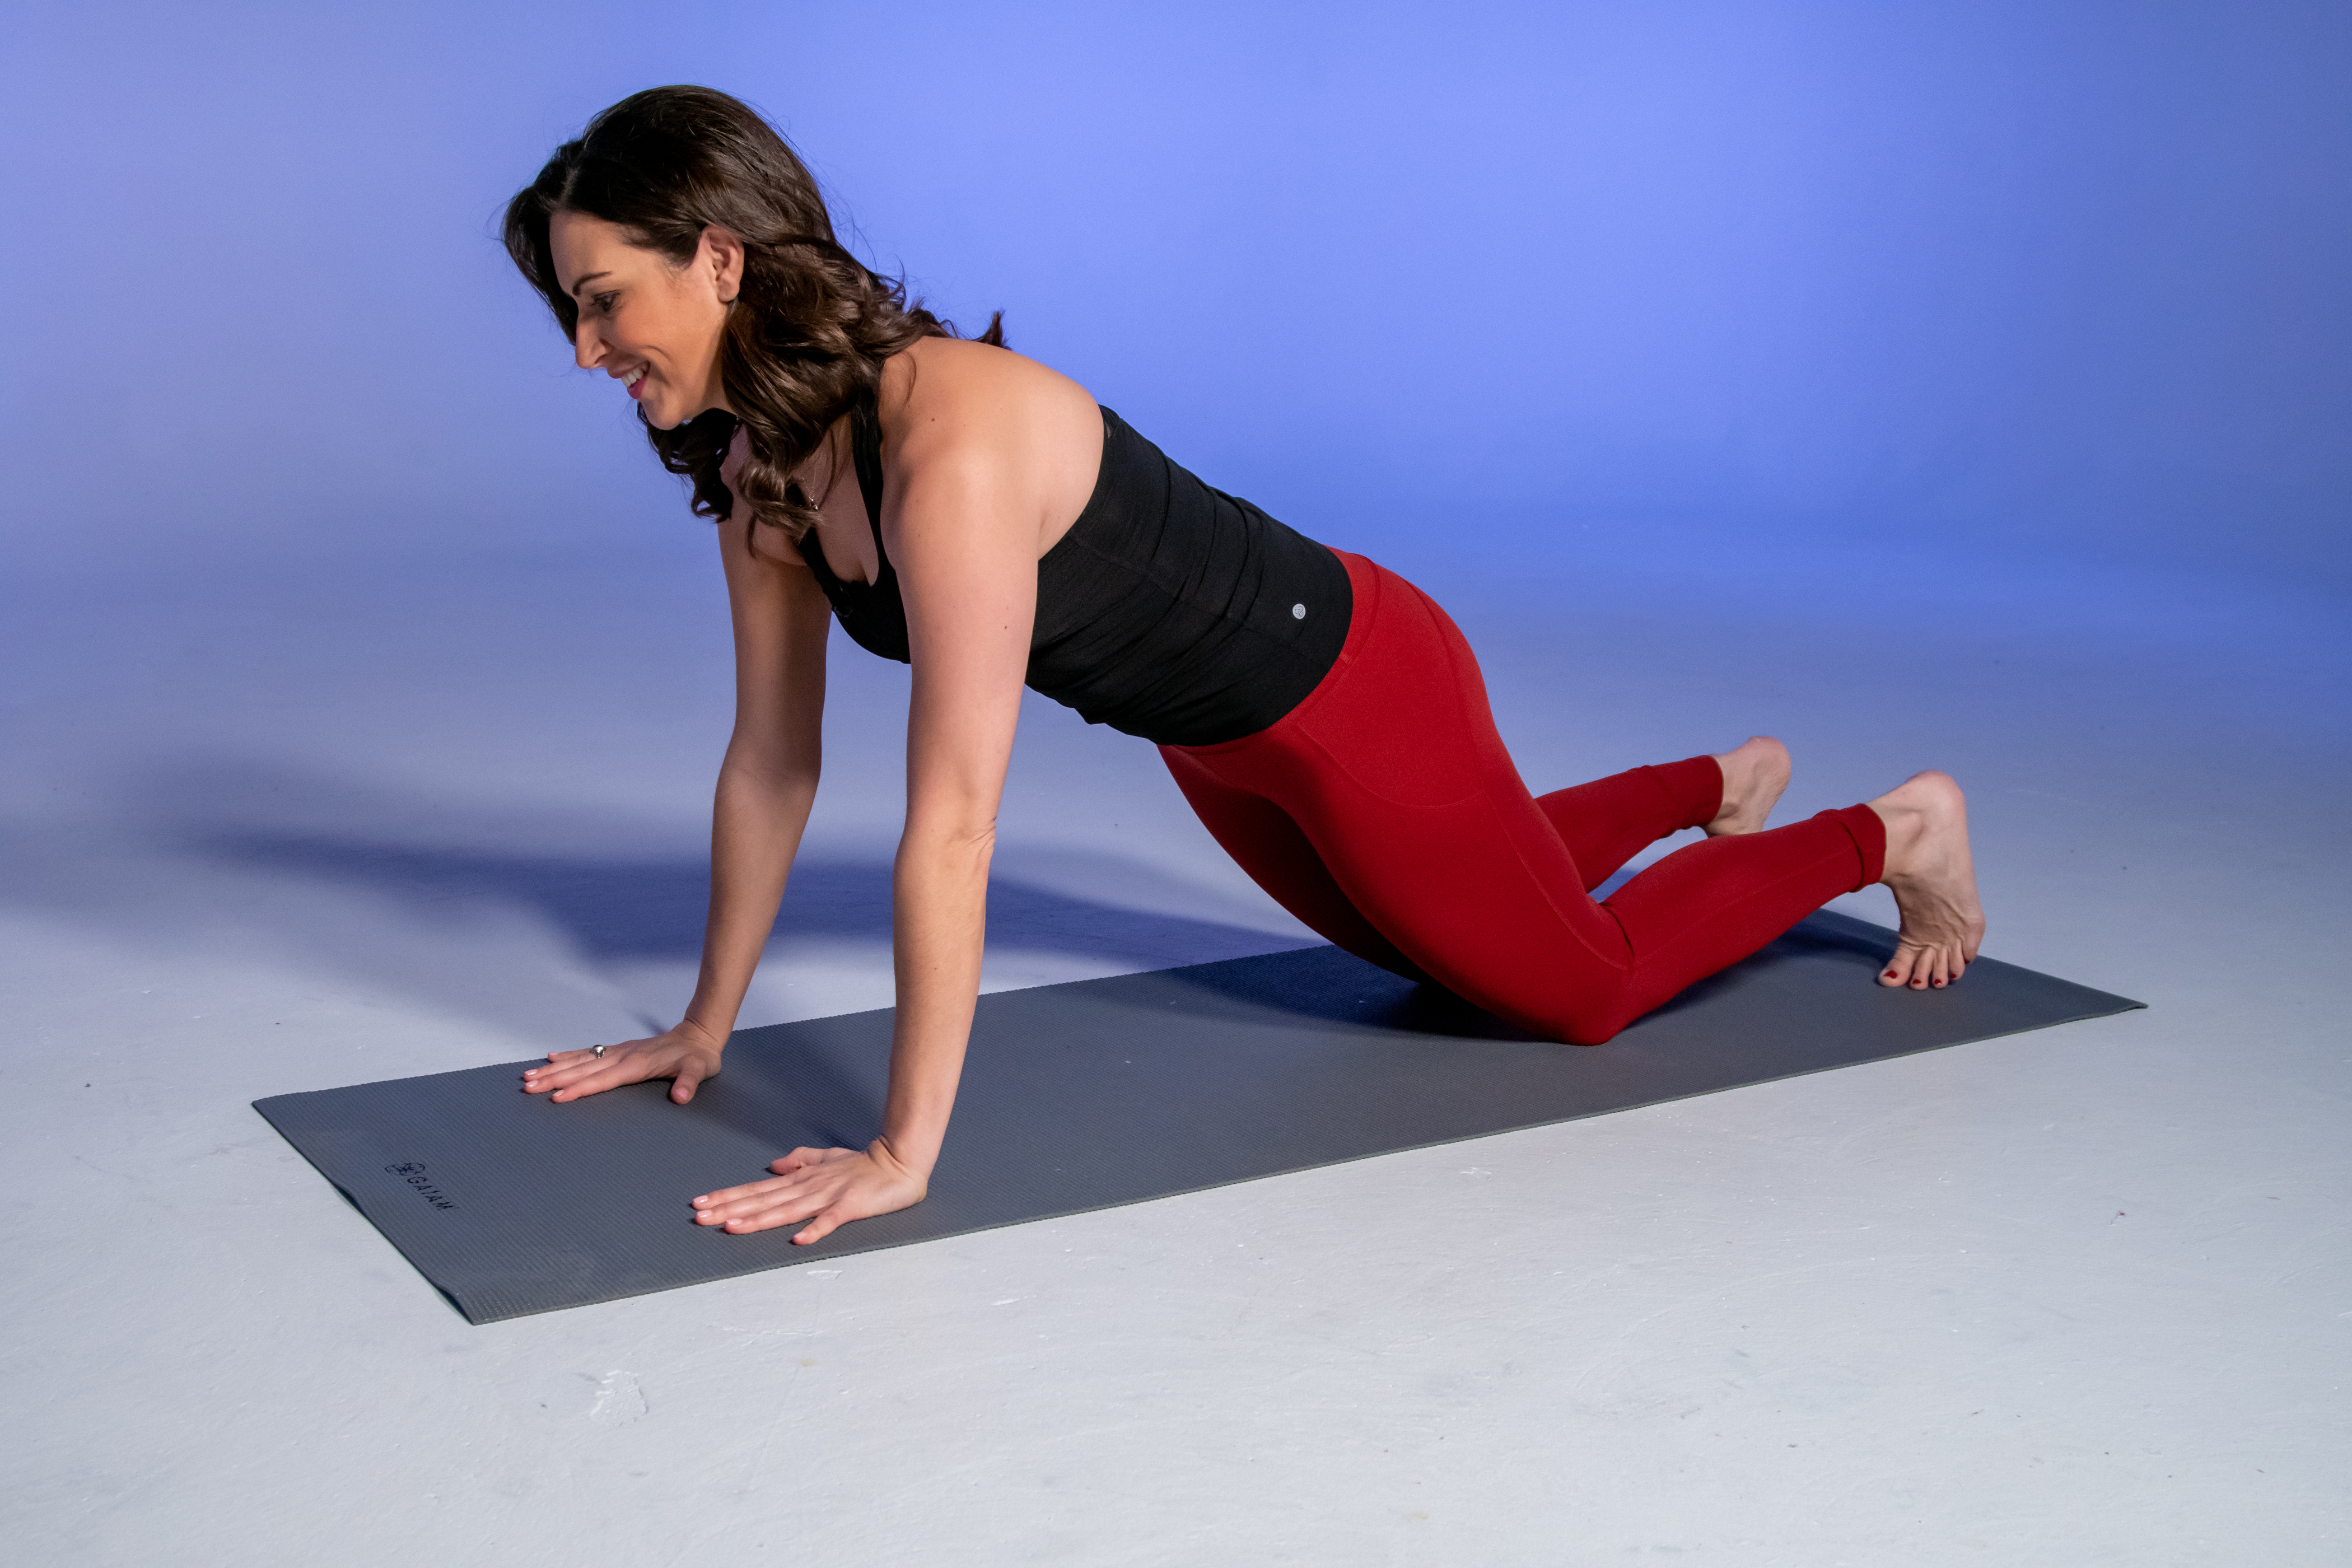 Stephanie Mansour demonstrates the starting position of a push-up that can be done on the floor or against the counter in your kitchen.